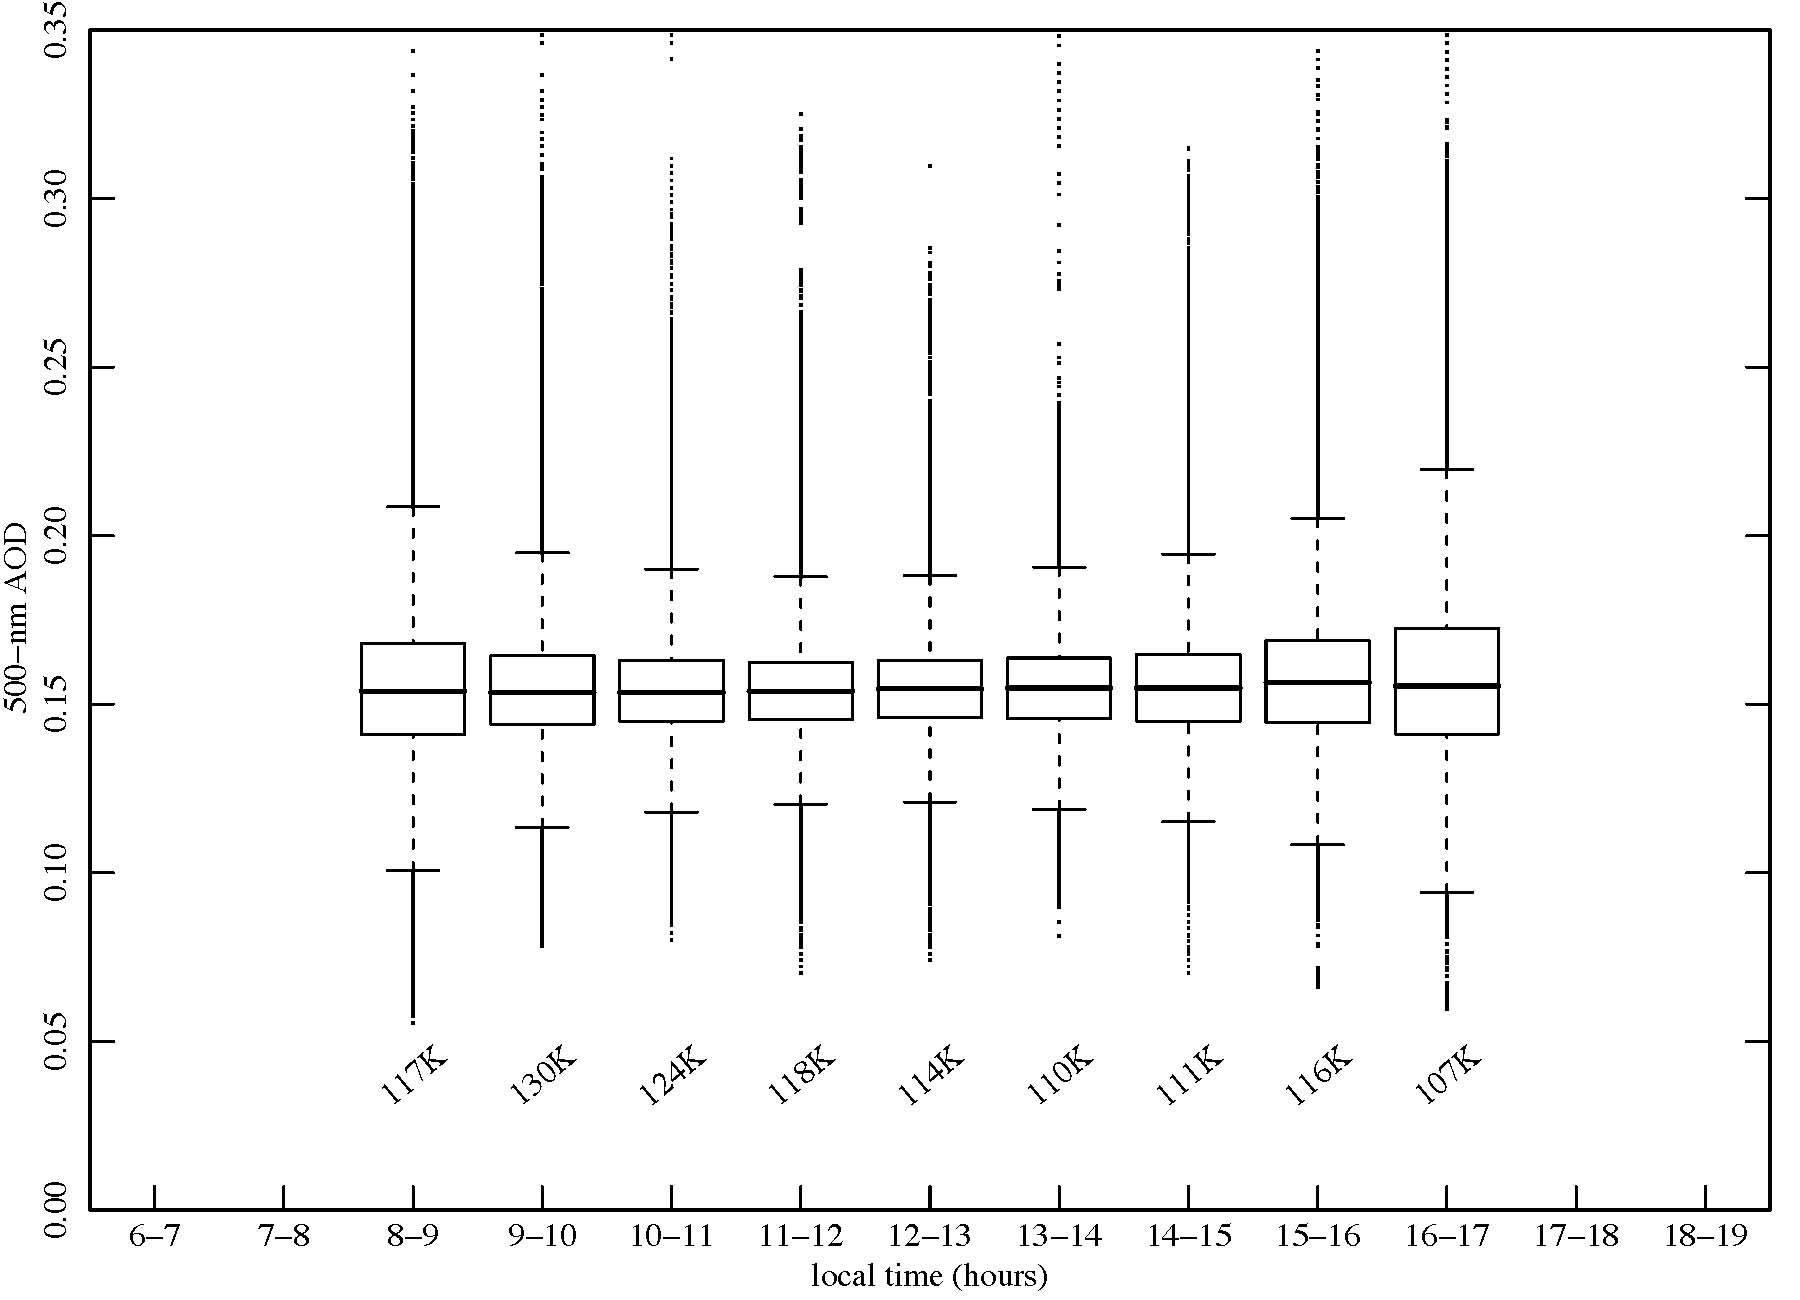 hight resolution of box plots of cloud screened 20 s samples of aerosol optical depth aod at 500 nm aggregated by time of day for entire year for period 2003 2007 inclusive